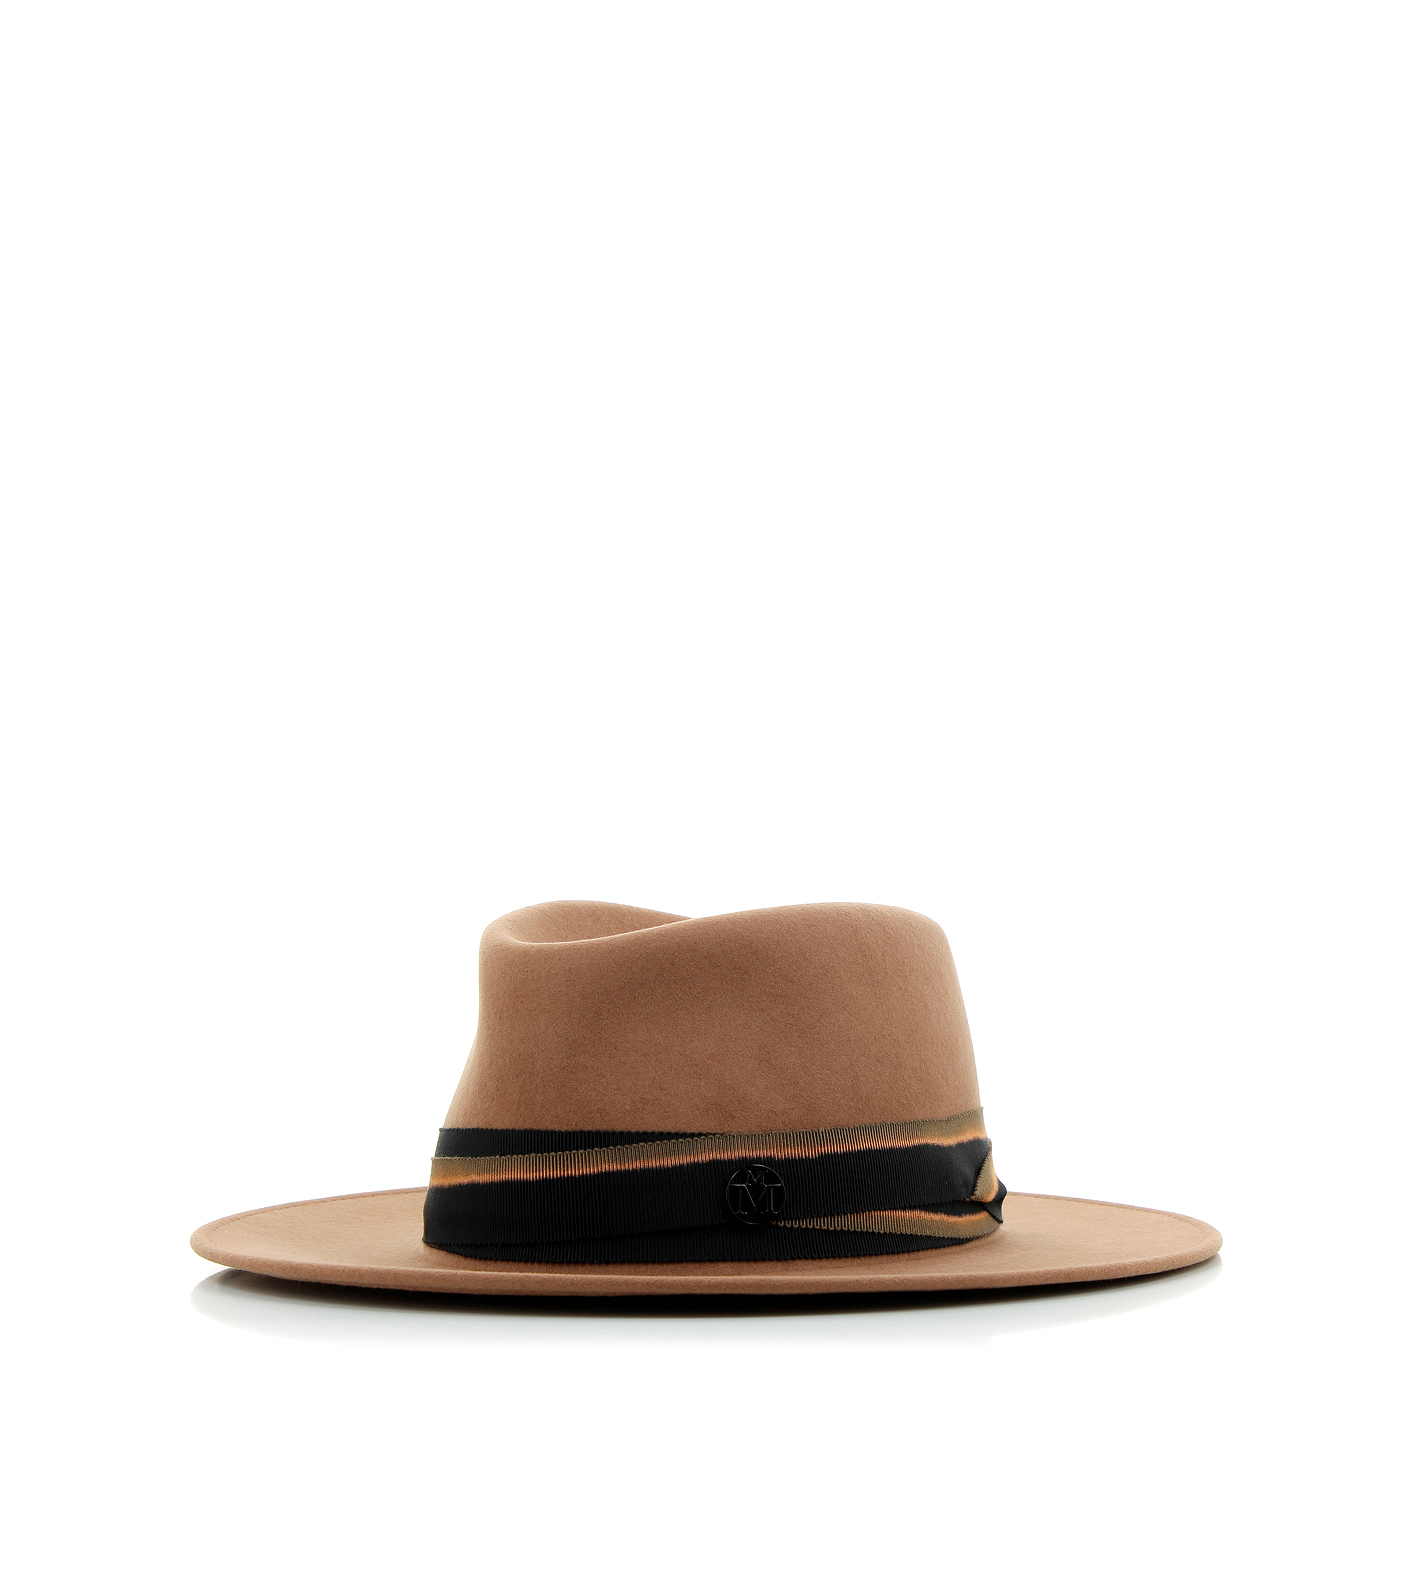 Maison michel thadee hat in brown lyst for Maison michel